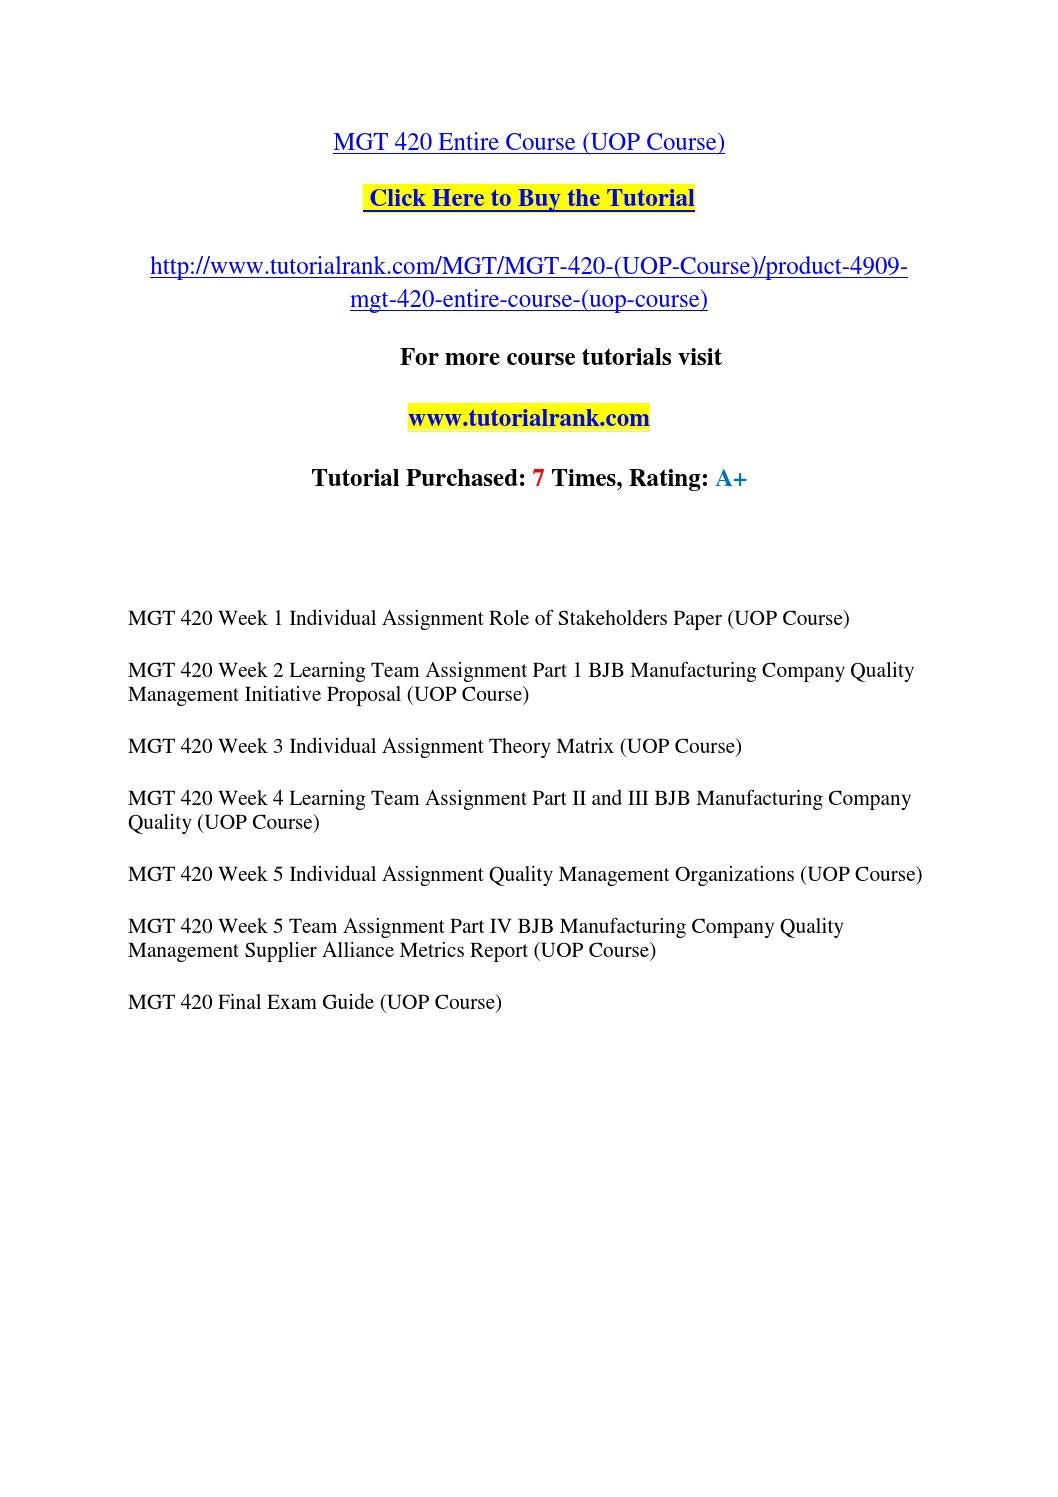 mgt 420 week 1 individual role of stakeholder paper For more course tutorials visit wwwuophelpcom mgt 420 week 1 individual assignment role of stakeholders paper mgt 420 week 2 learning team assignment part 1 bjb manufacturing company quality management initiative proposal mgt 420 week 3 individual assignment theory matrix mgt 420 week 4 learning team assignment part ii & iii bjb manufacturing.